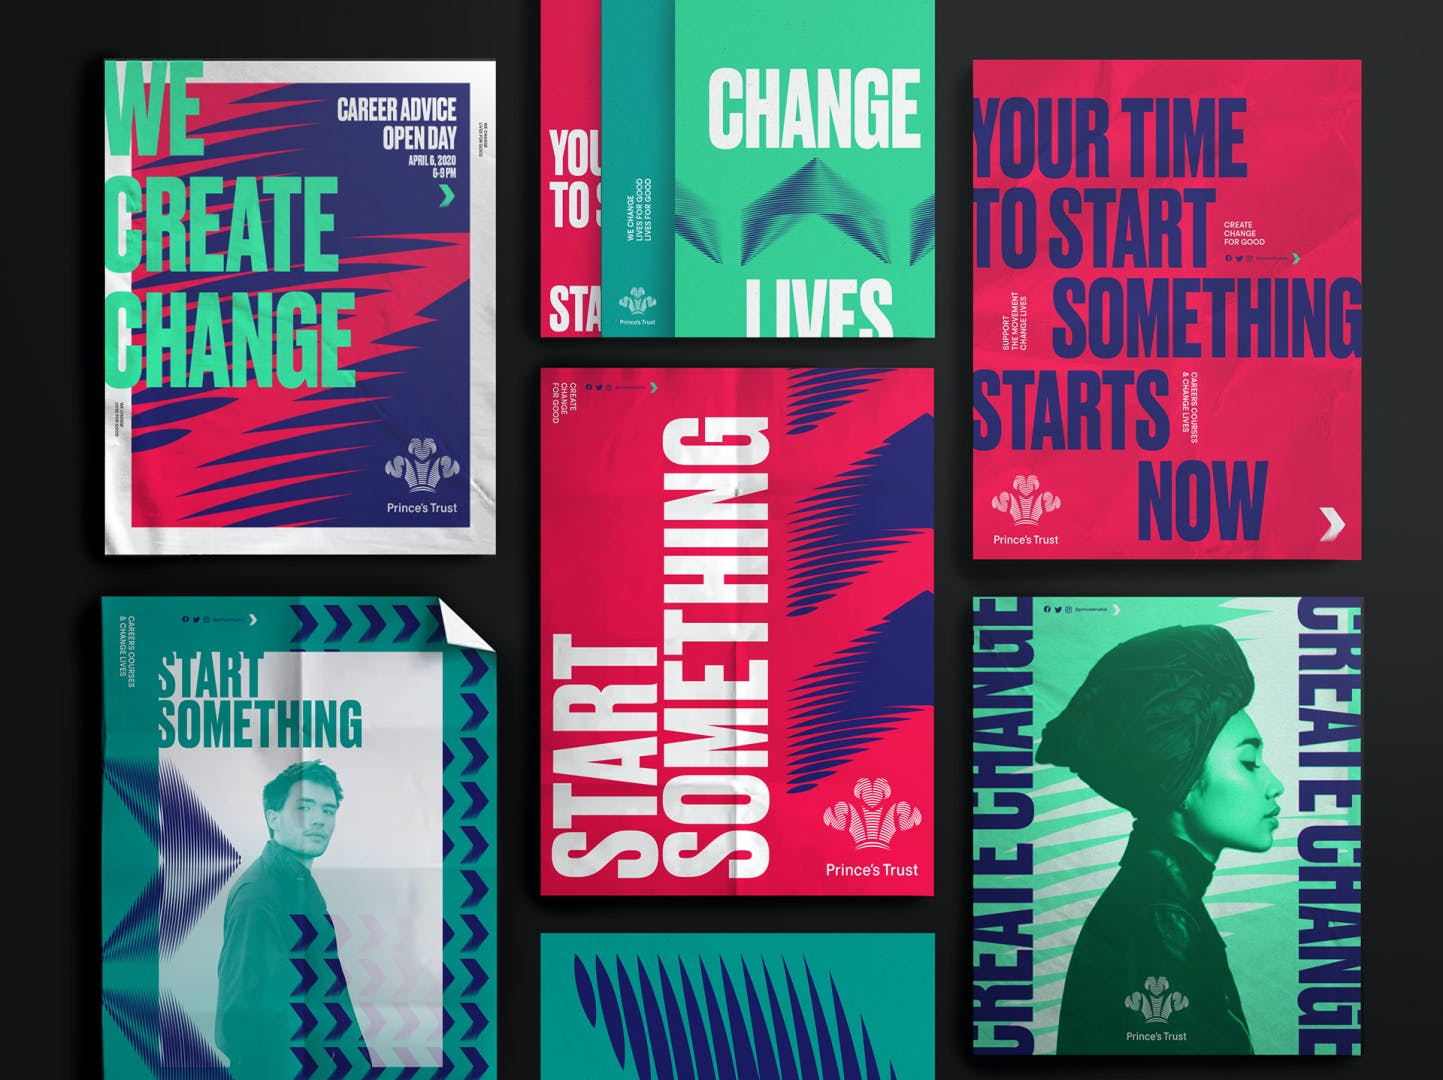 The Prince's Trust charity branding